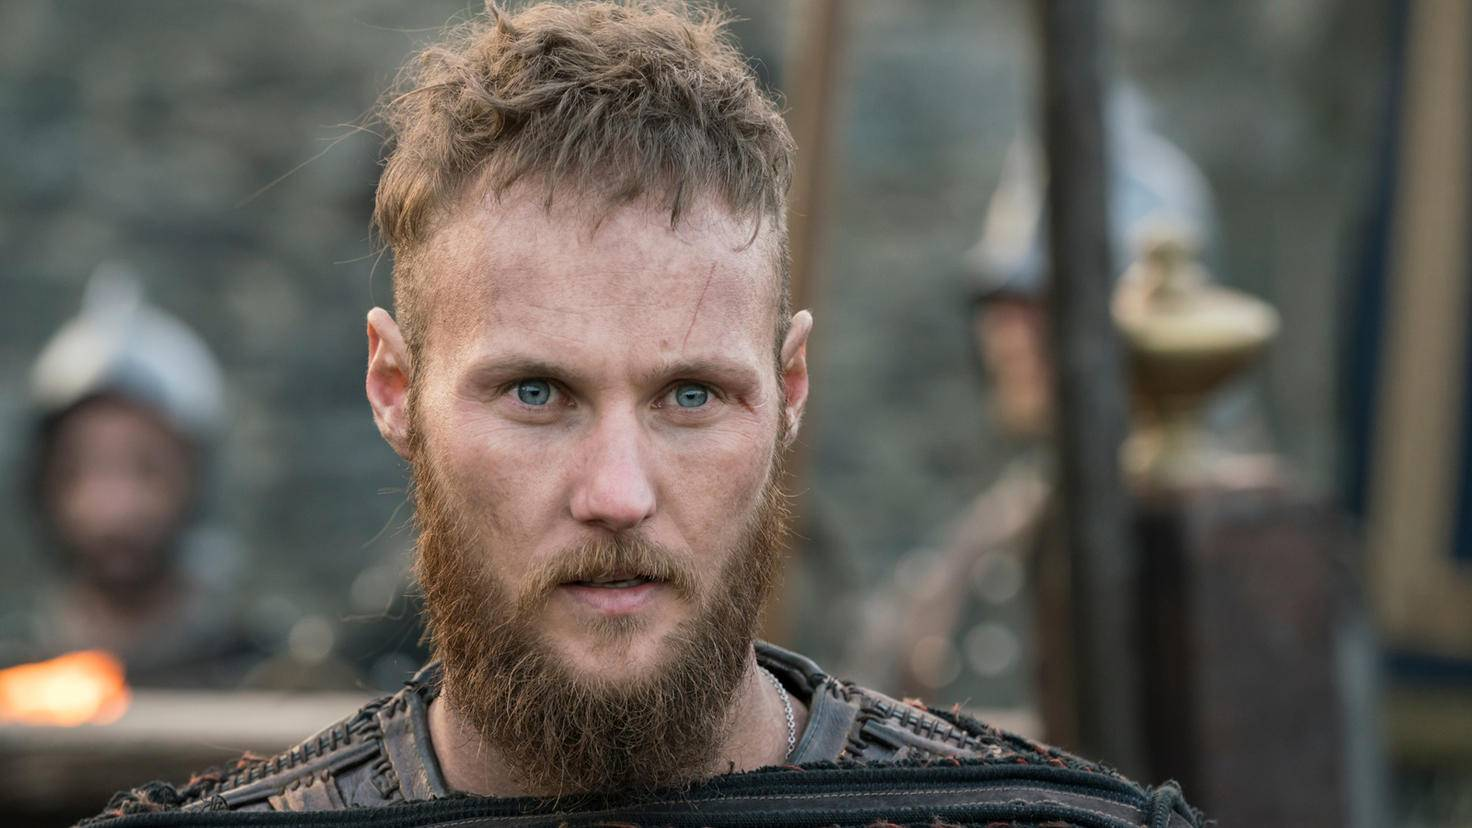 Ubbe Staffel 5 Part 2 Vikings